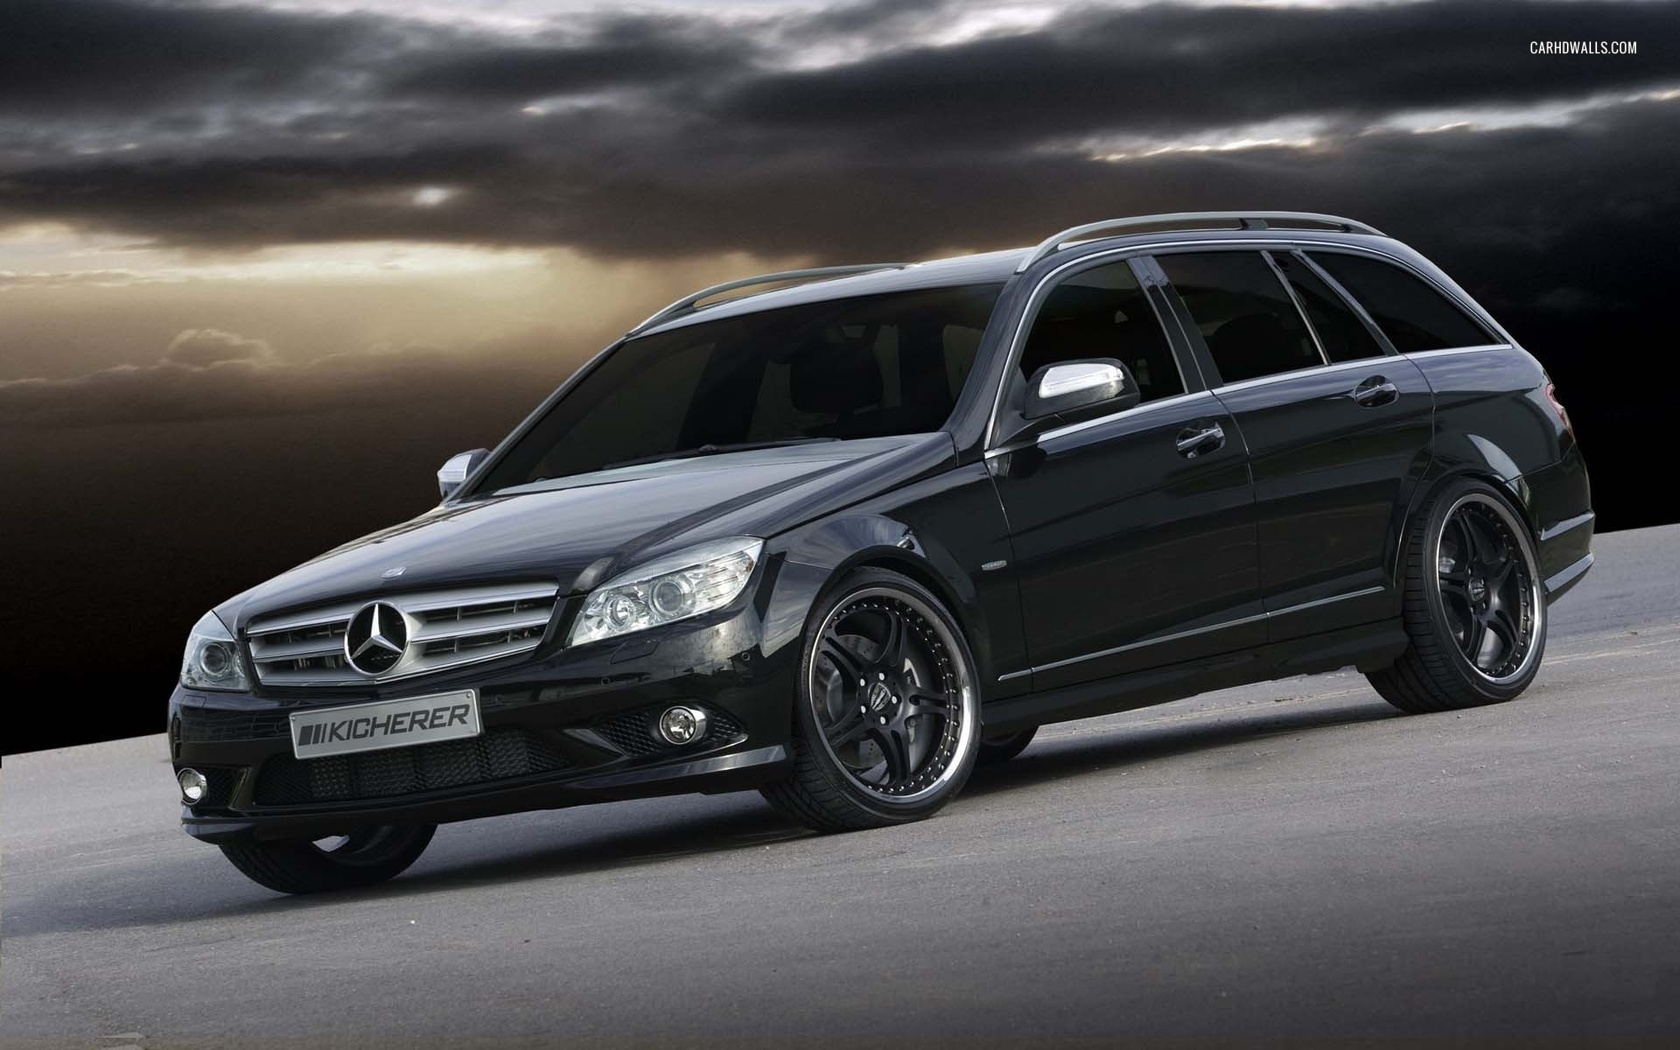 Mercedes benz c klasse t modell technical details history for Mercedes benz ml350 accessories